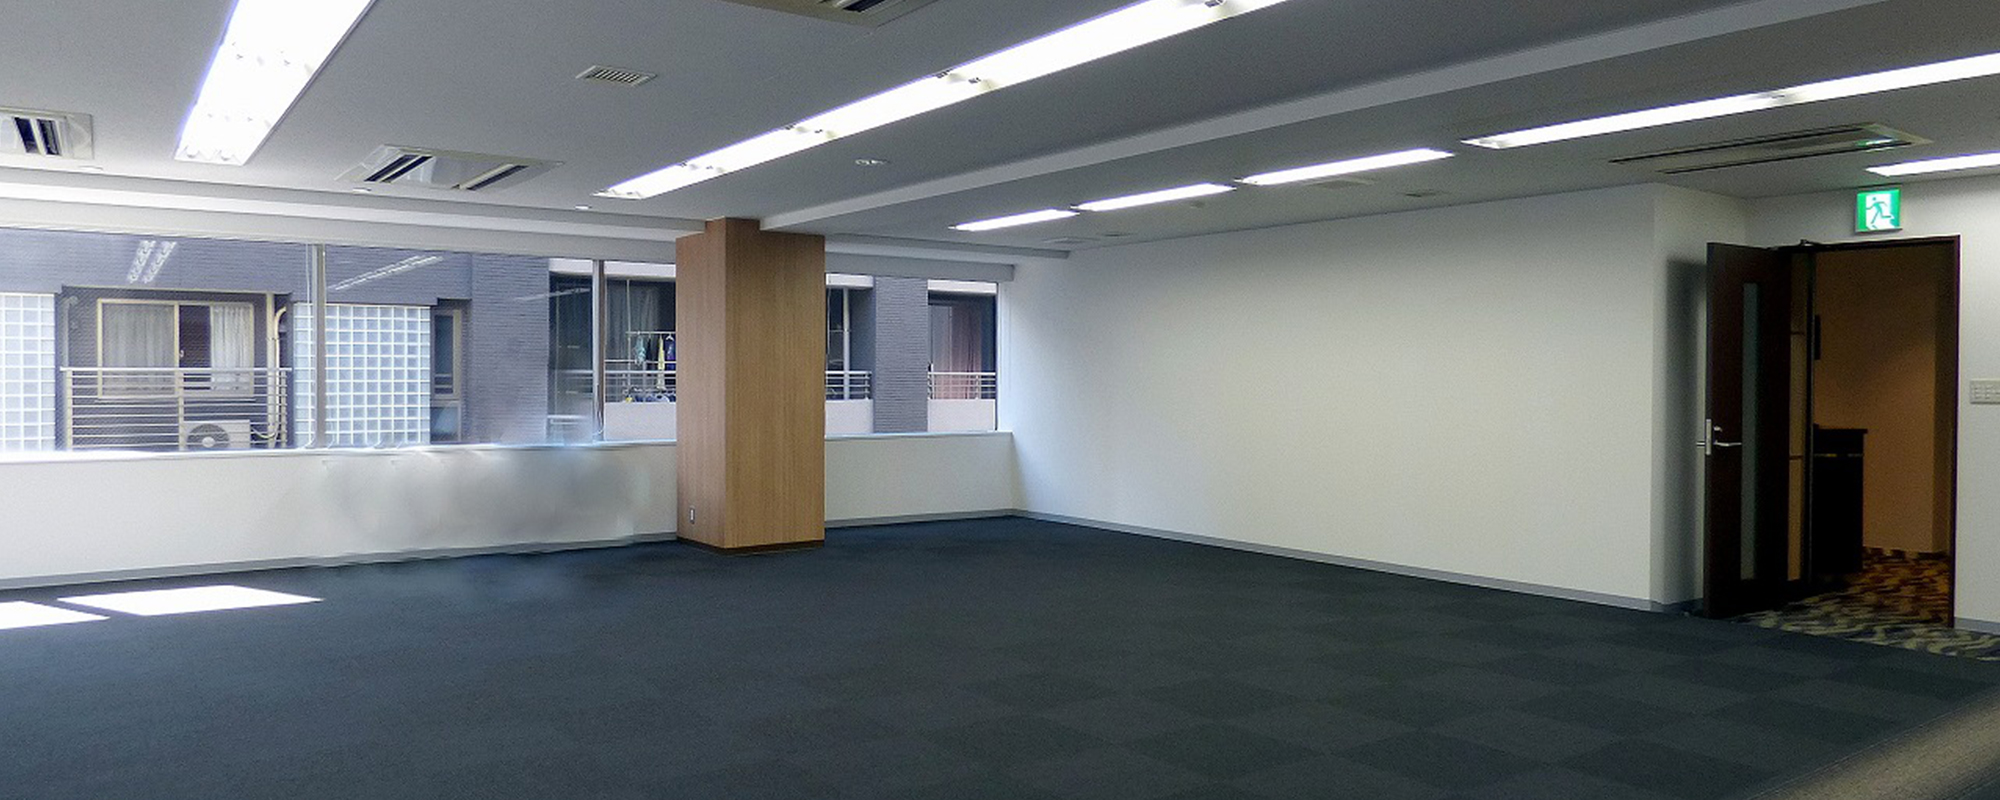 OFFICENAVI Co.,Ltd. | Japan's one of the largest websites for finding rental offices.image